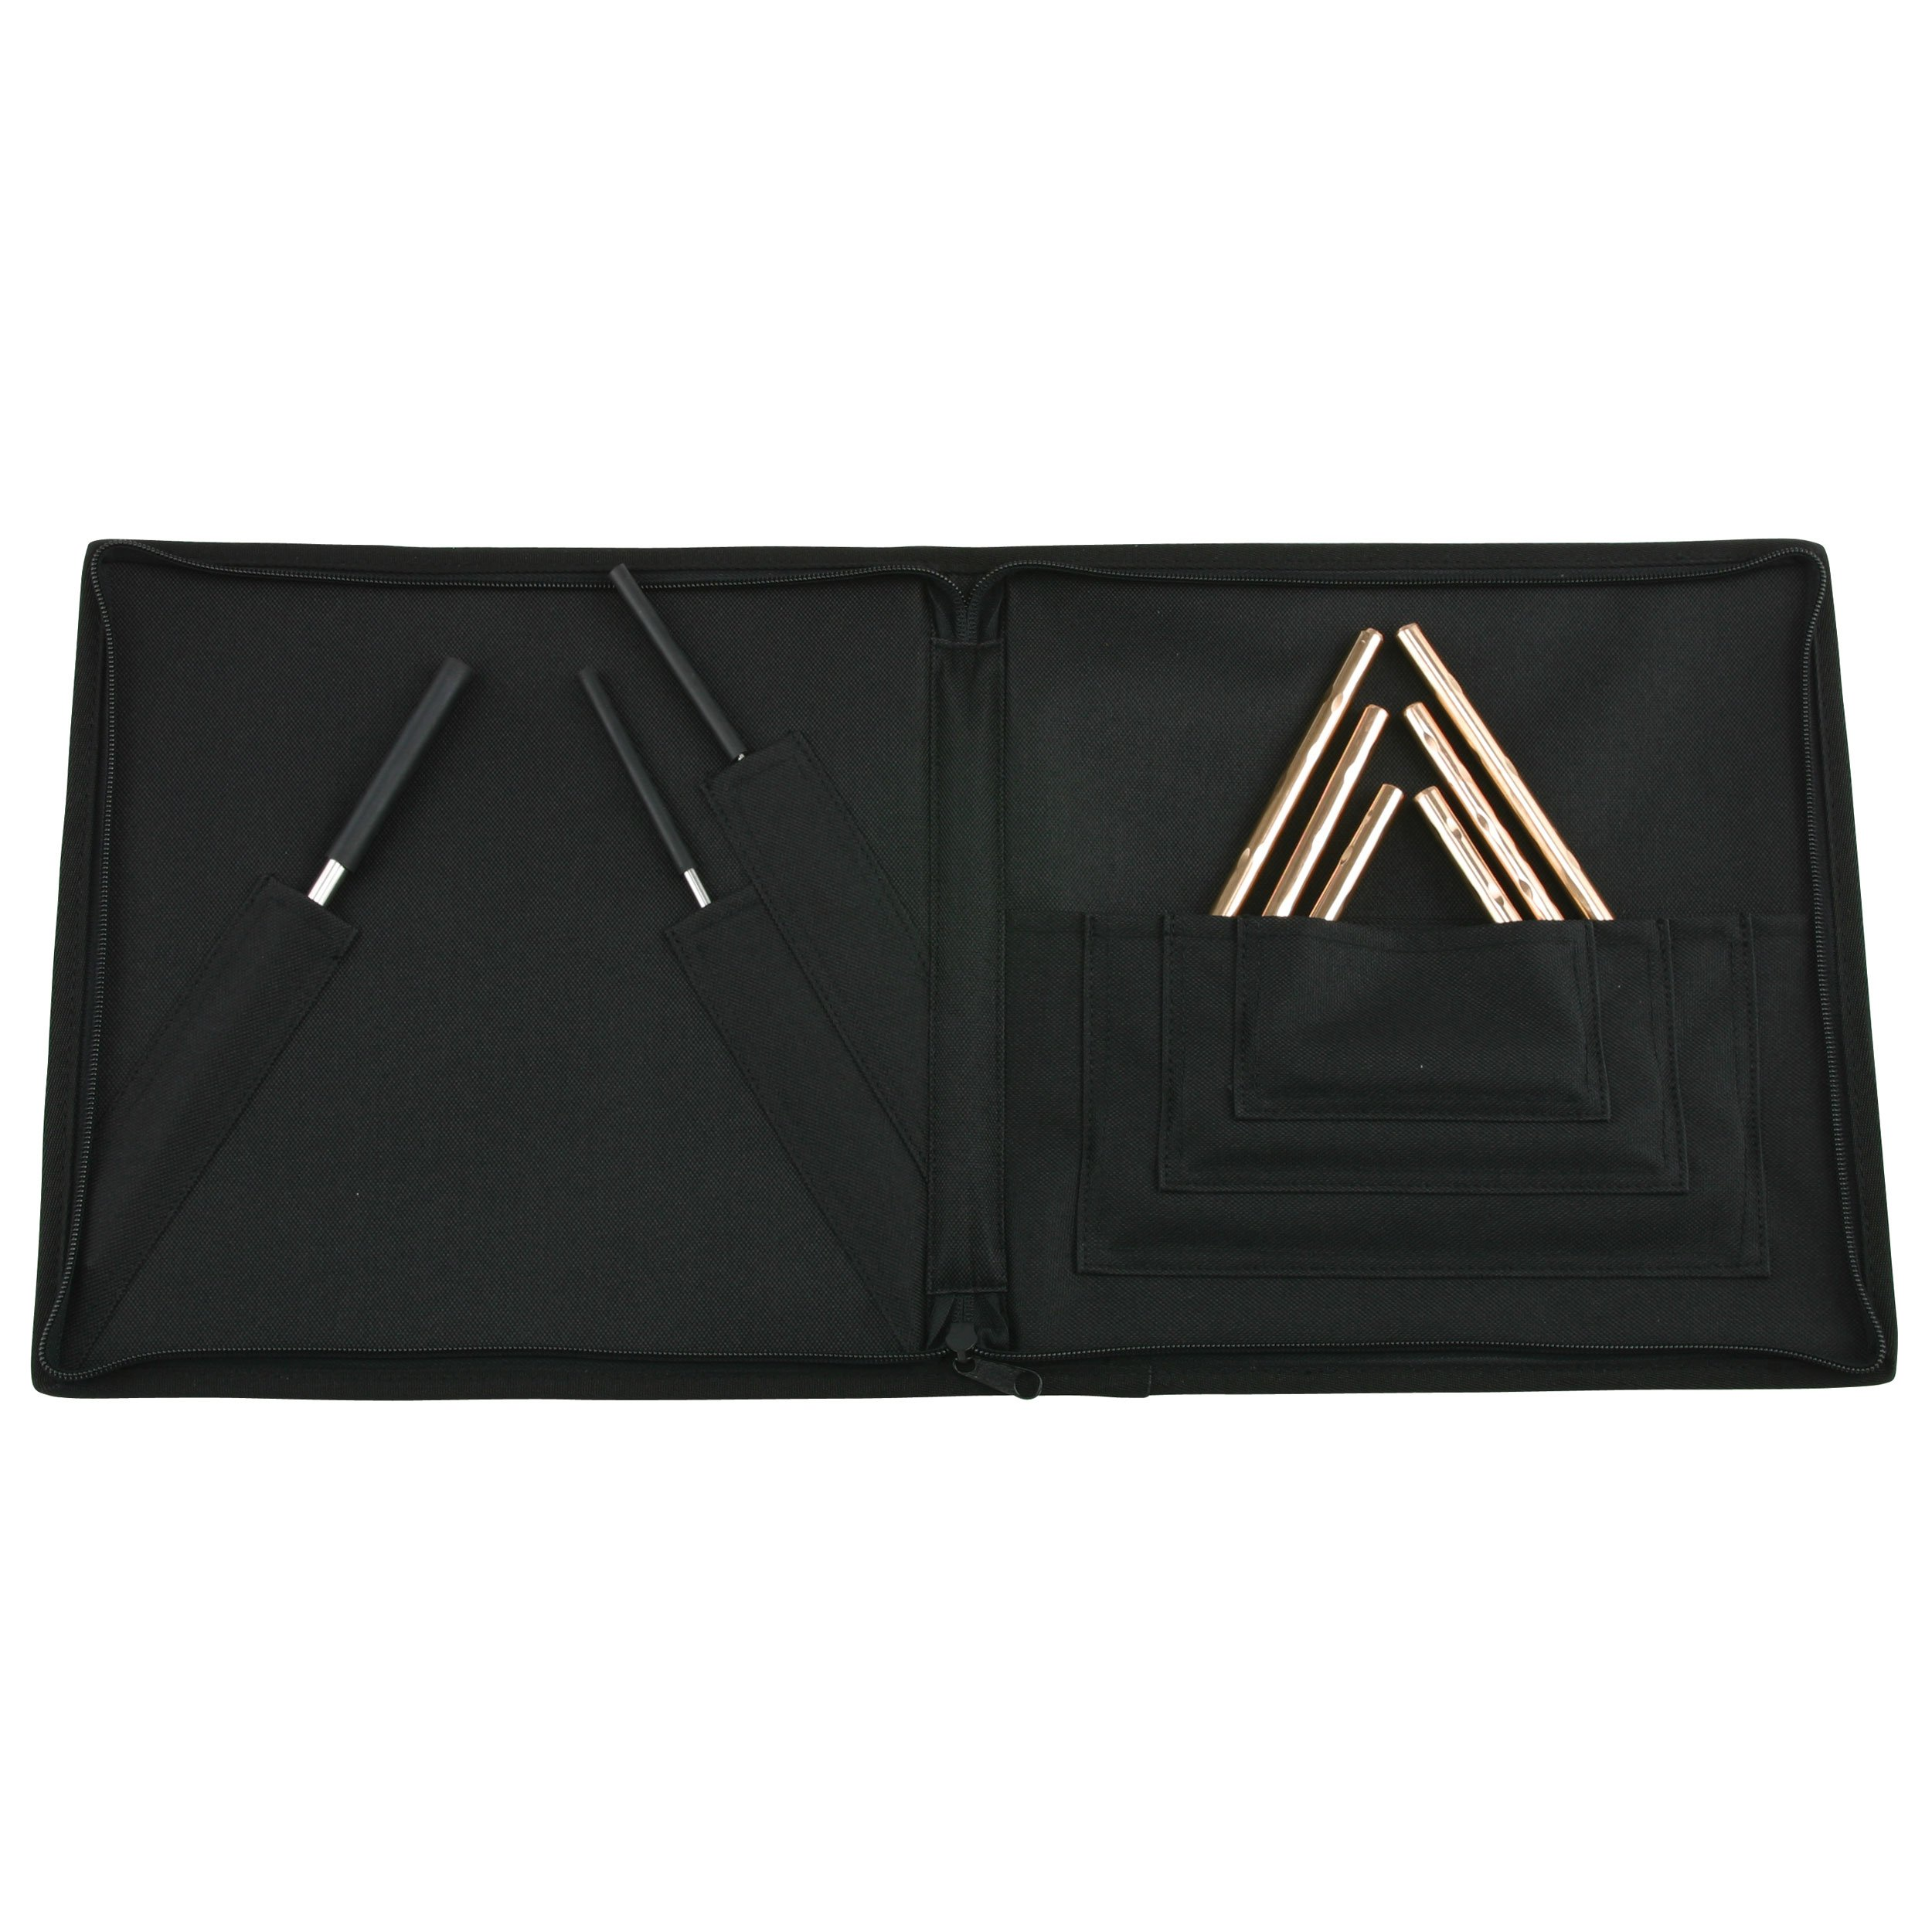 Sabian 61140H Hand Hammered Triangle Set with Beaters and Case